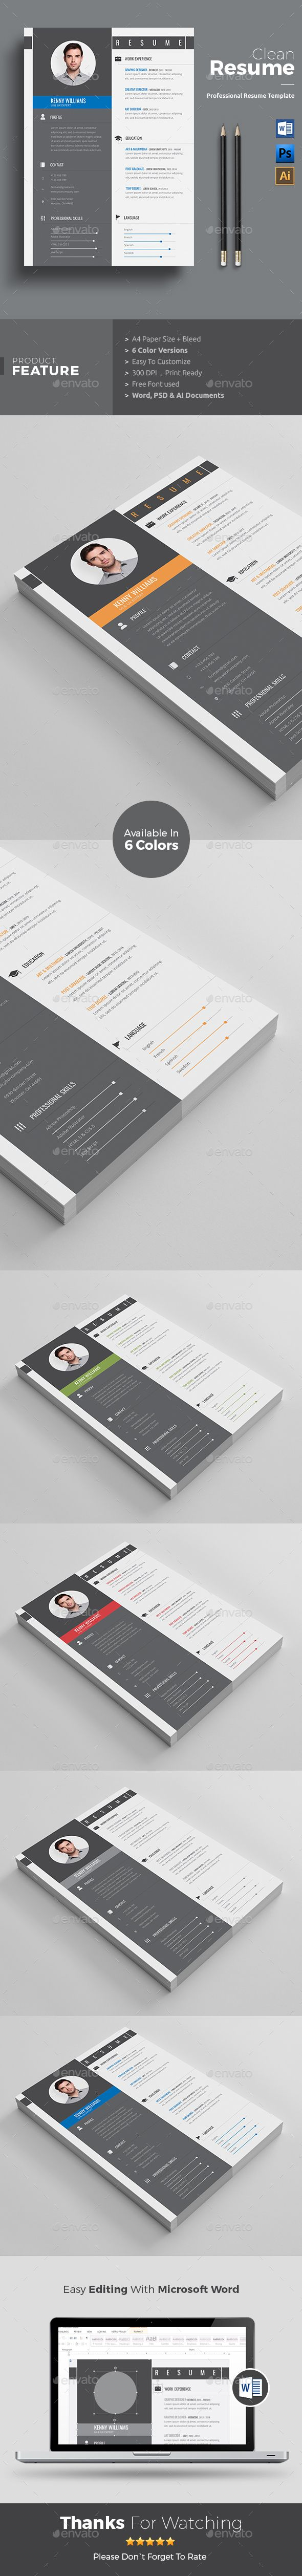 best ideas about cool resumes cv design resume